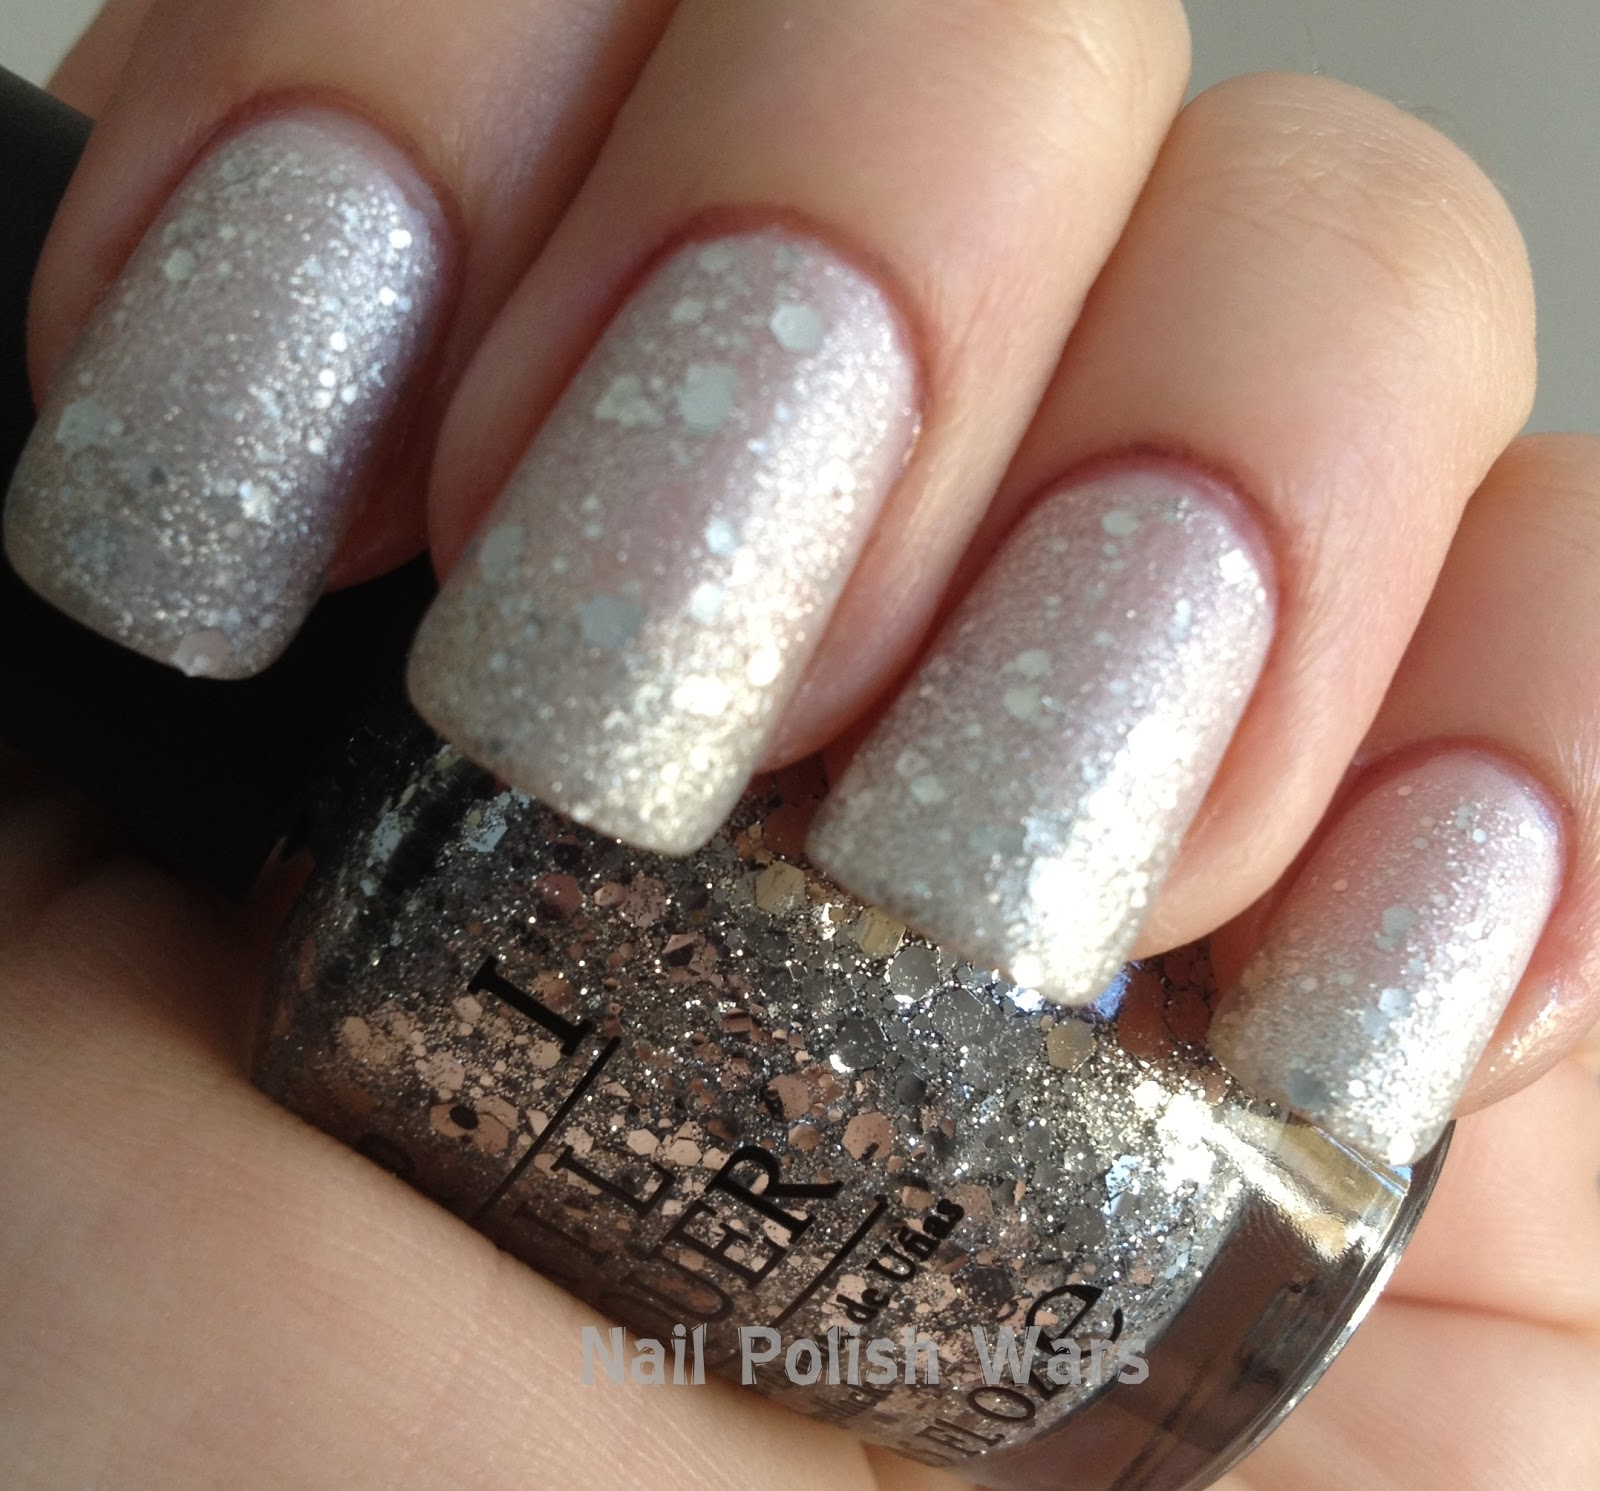 Nail Polish Wars: Frosted Snow Globes!